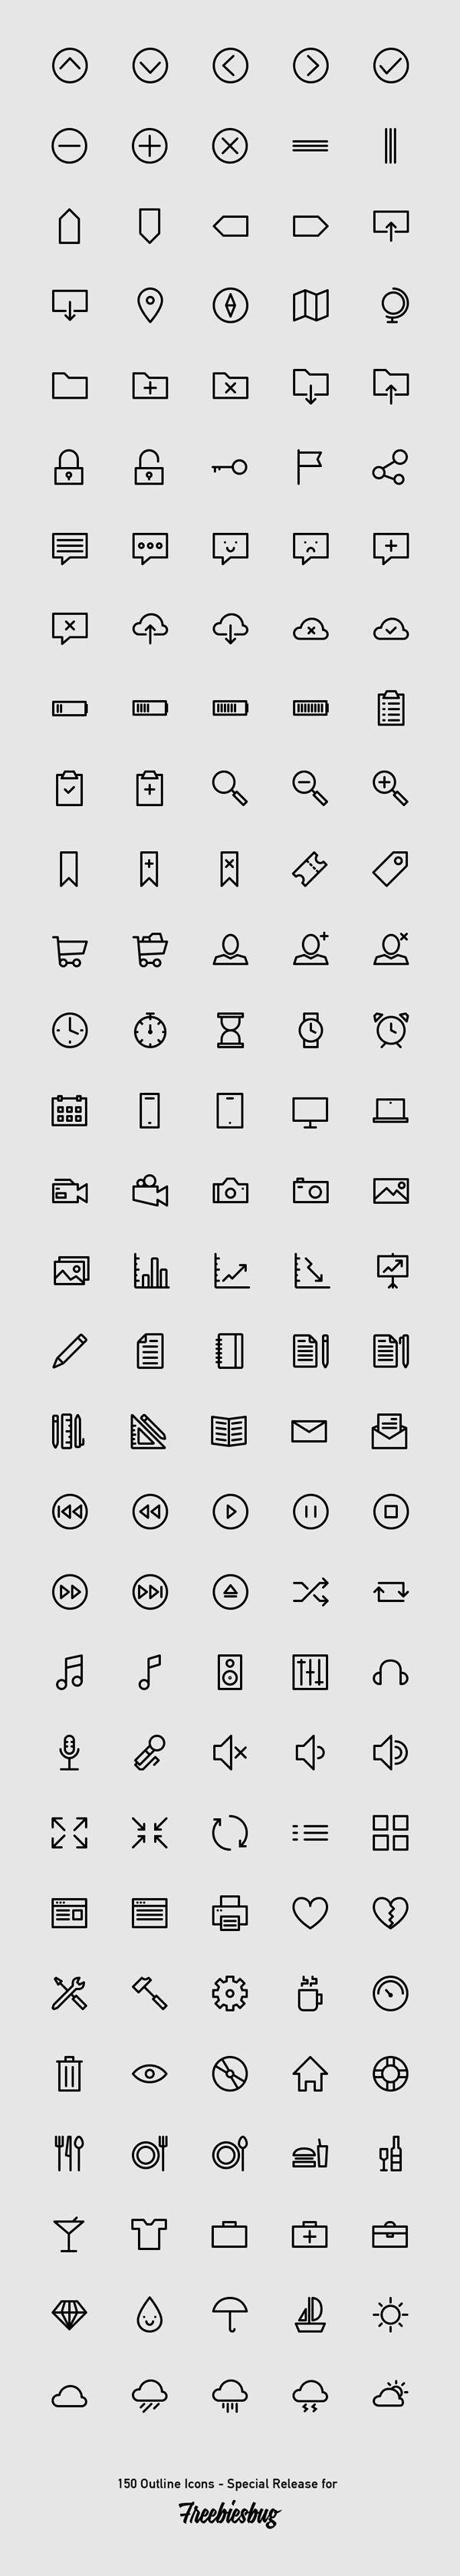 Awesome 150 Outlined Icons. A simple but useful icon set including 150 stroke icons available in PSD AI EPS and an awesome Webfont ready to be included in your website. This great freebie has been created by Dario Ferrando. #featured #freepsd #freebie #freemium #icon #line #premium #resource Check more at http://psdfinder.com/free-psd/150-outlined-icons